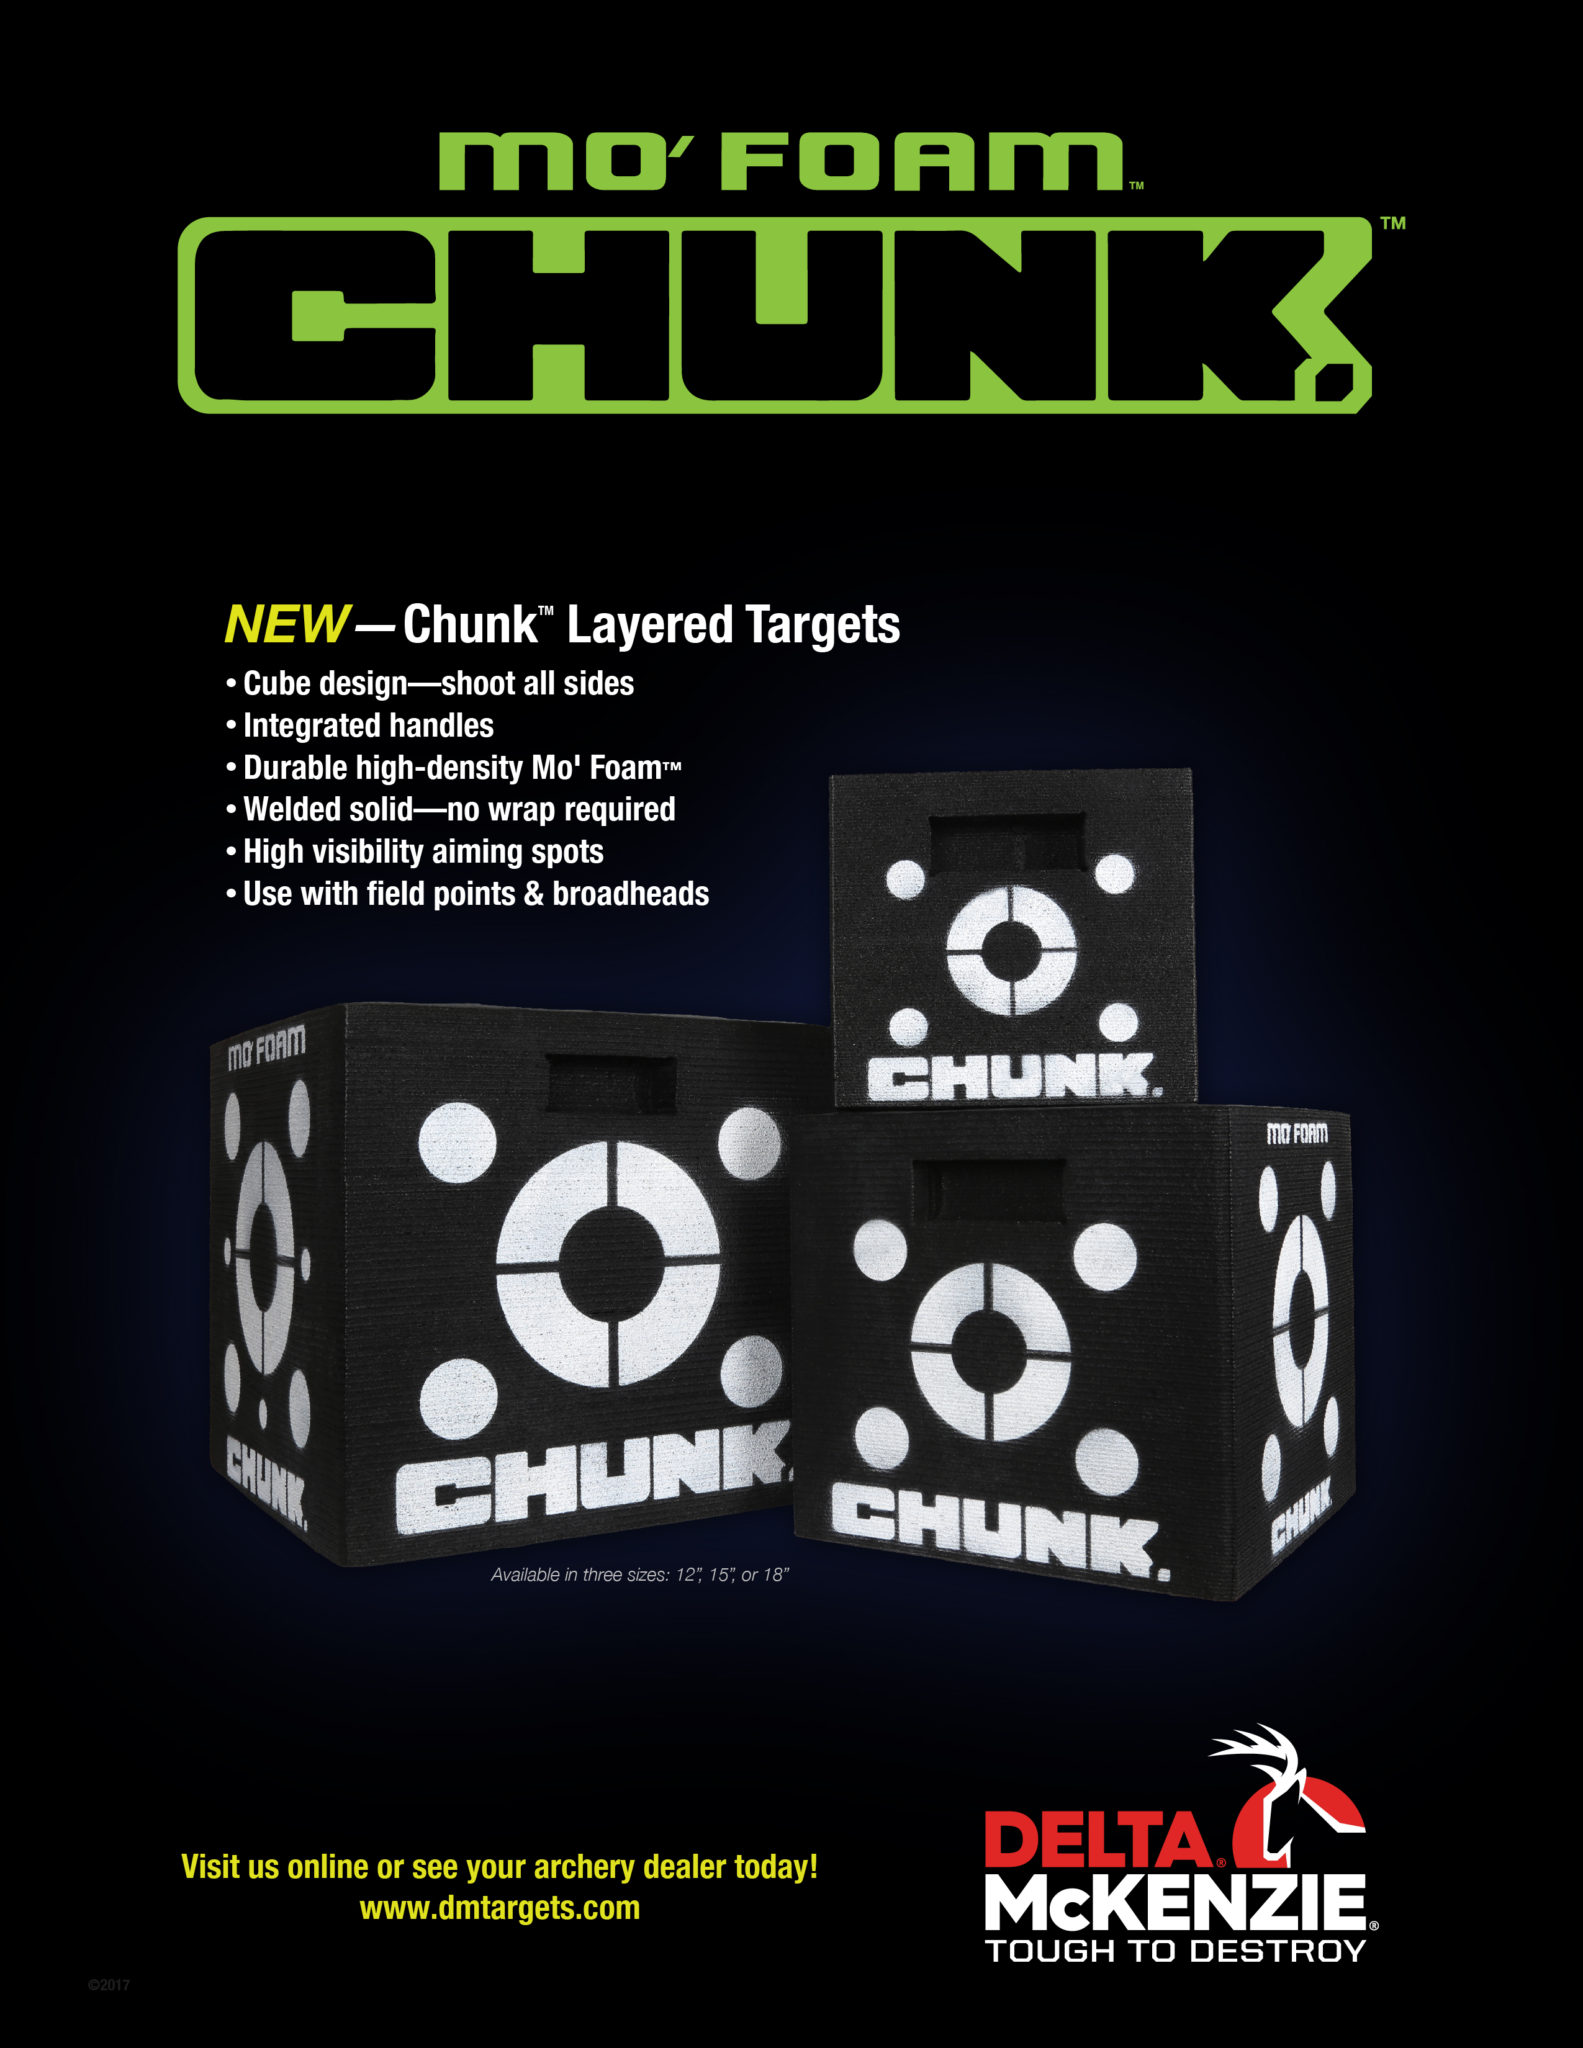 Innovative Chunk Layered Archery Targets Introduced